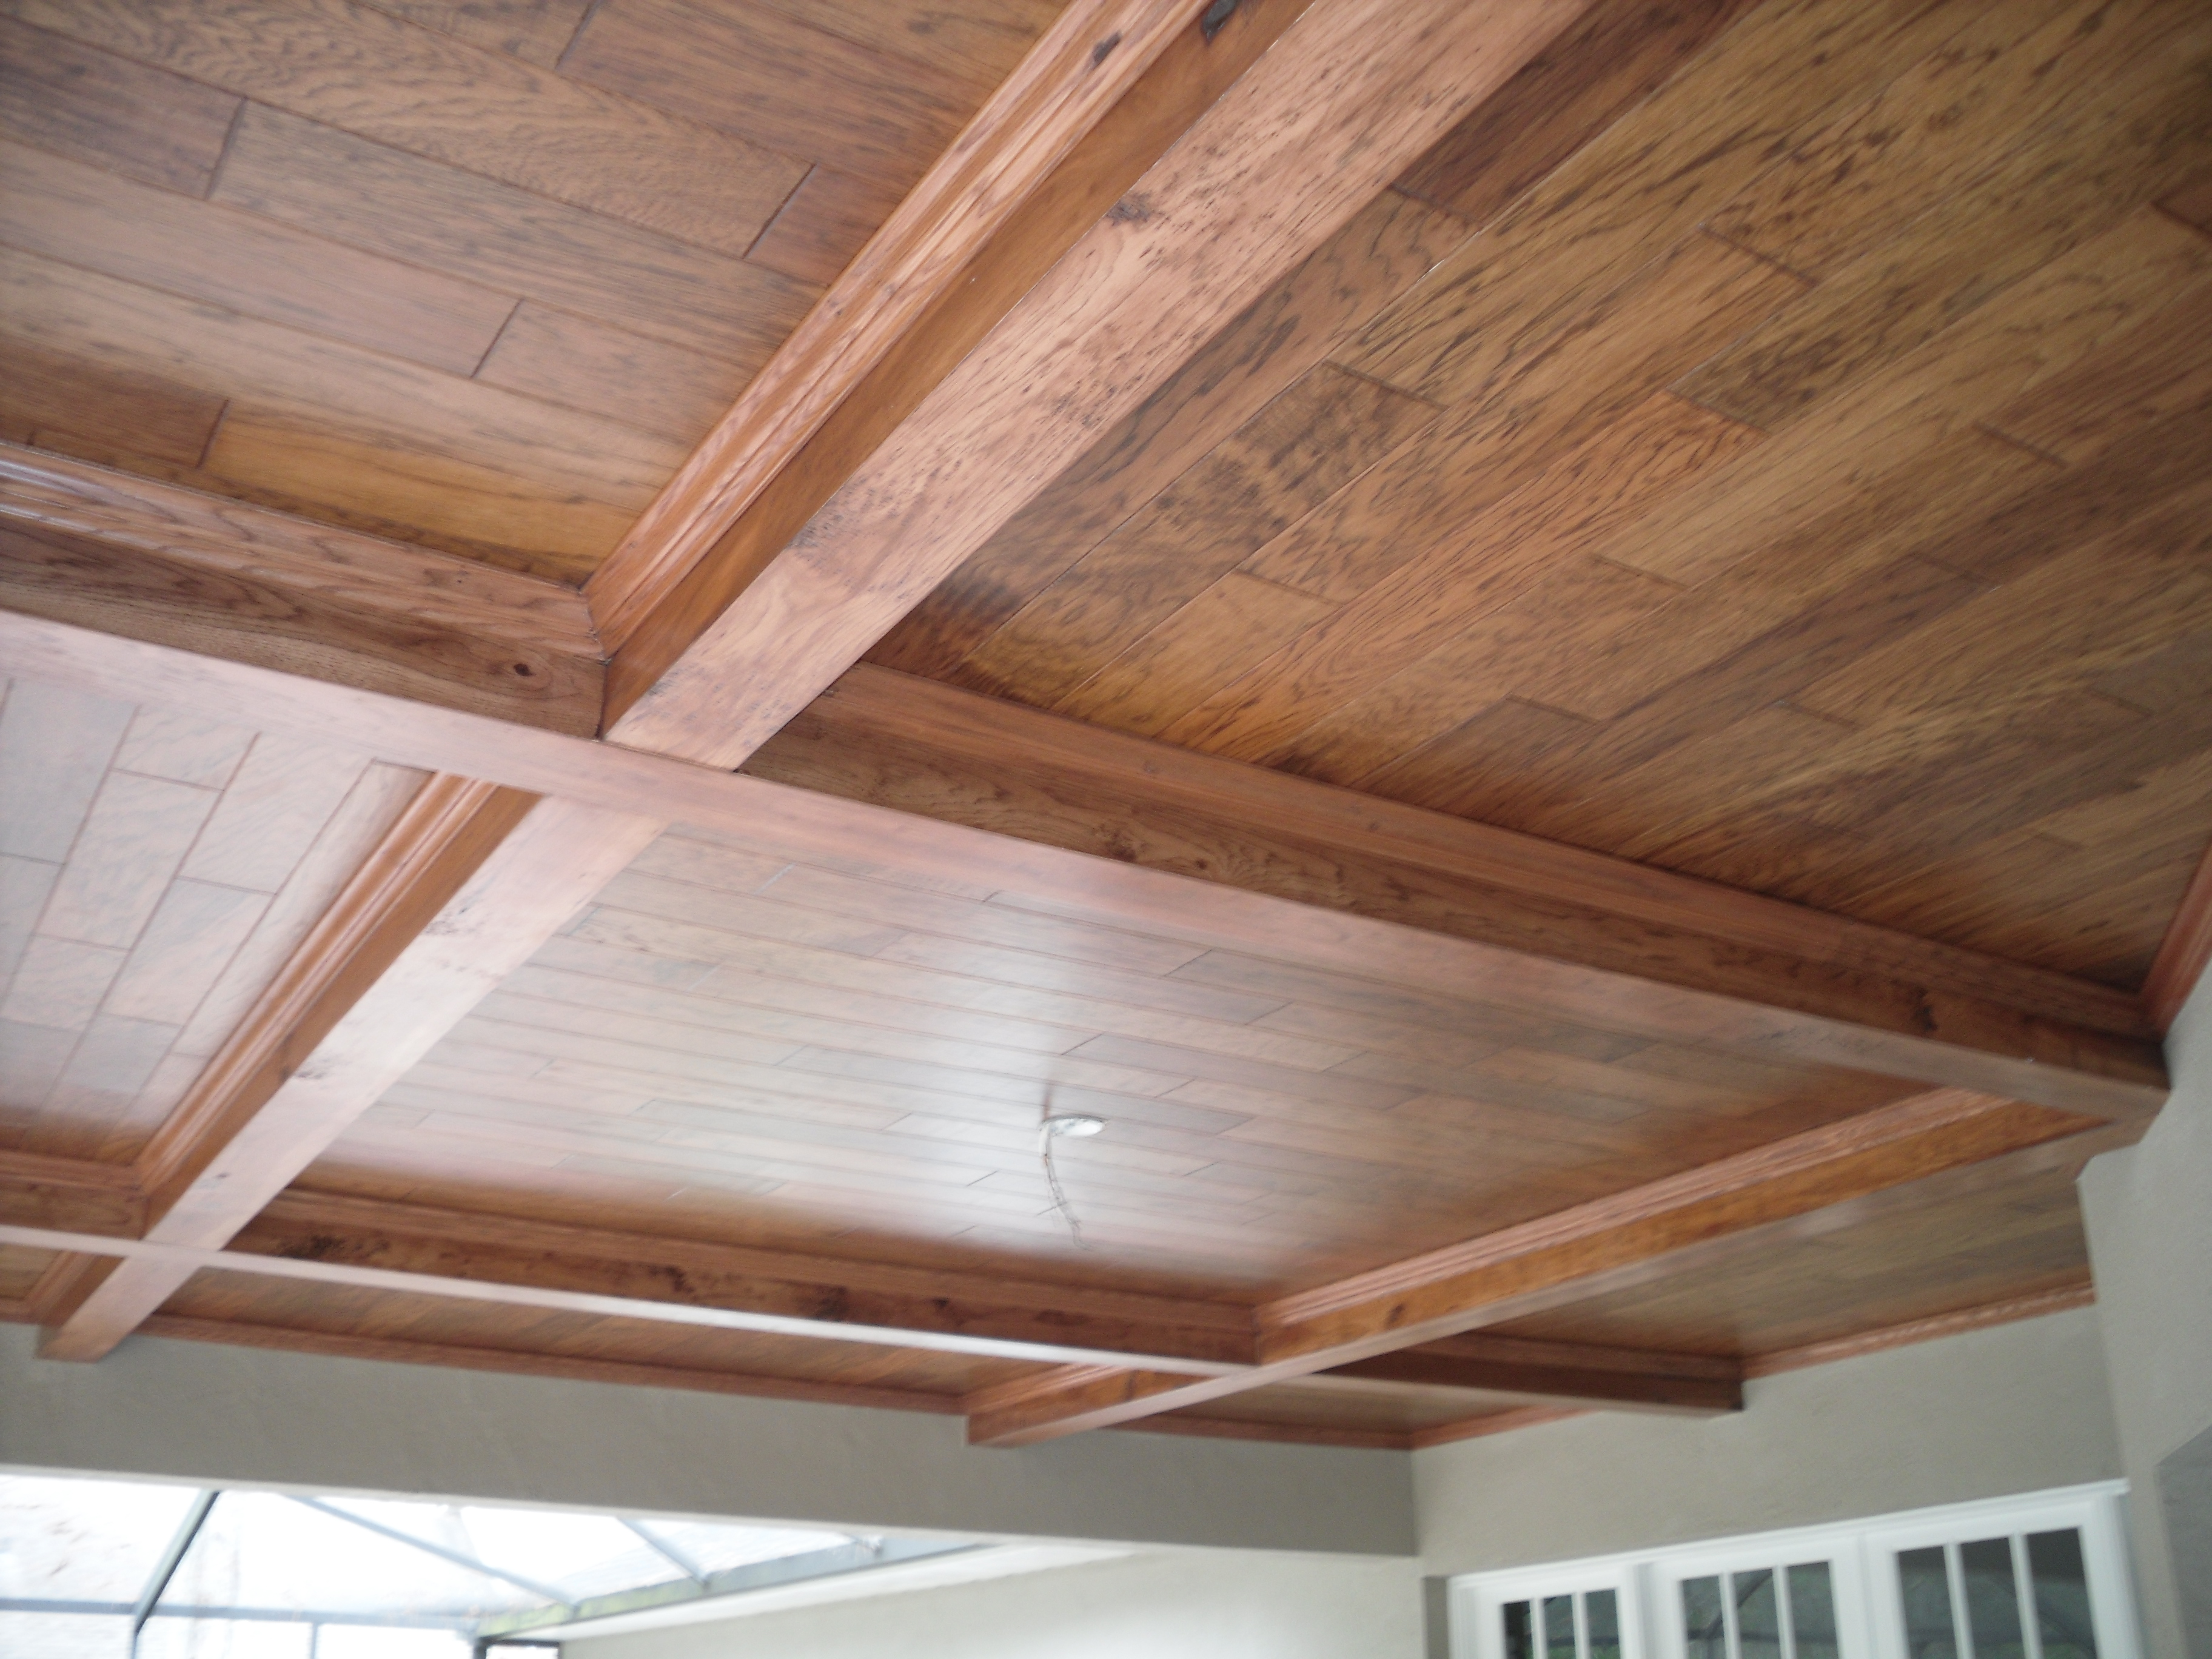 Ceilings Became Our Bread And Butter. We Pride Ourselves In Bringing To  Your Home A Prepared Crew, Quality Materials And Commitment To Quality.